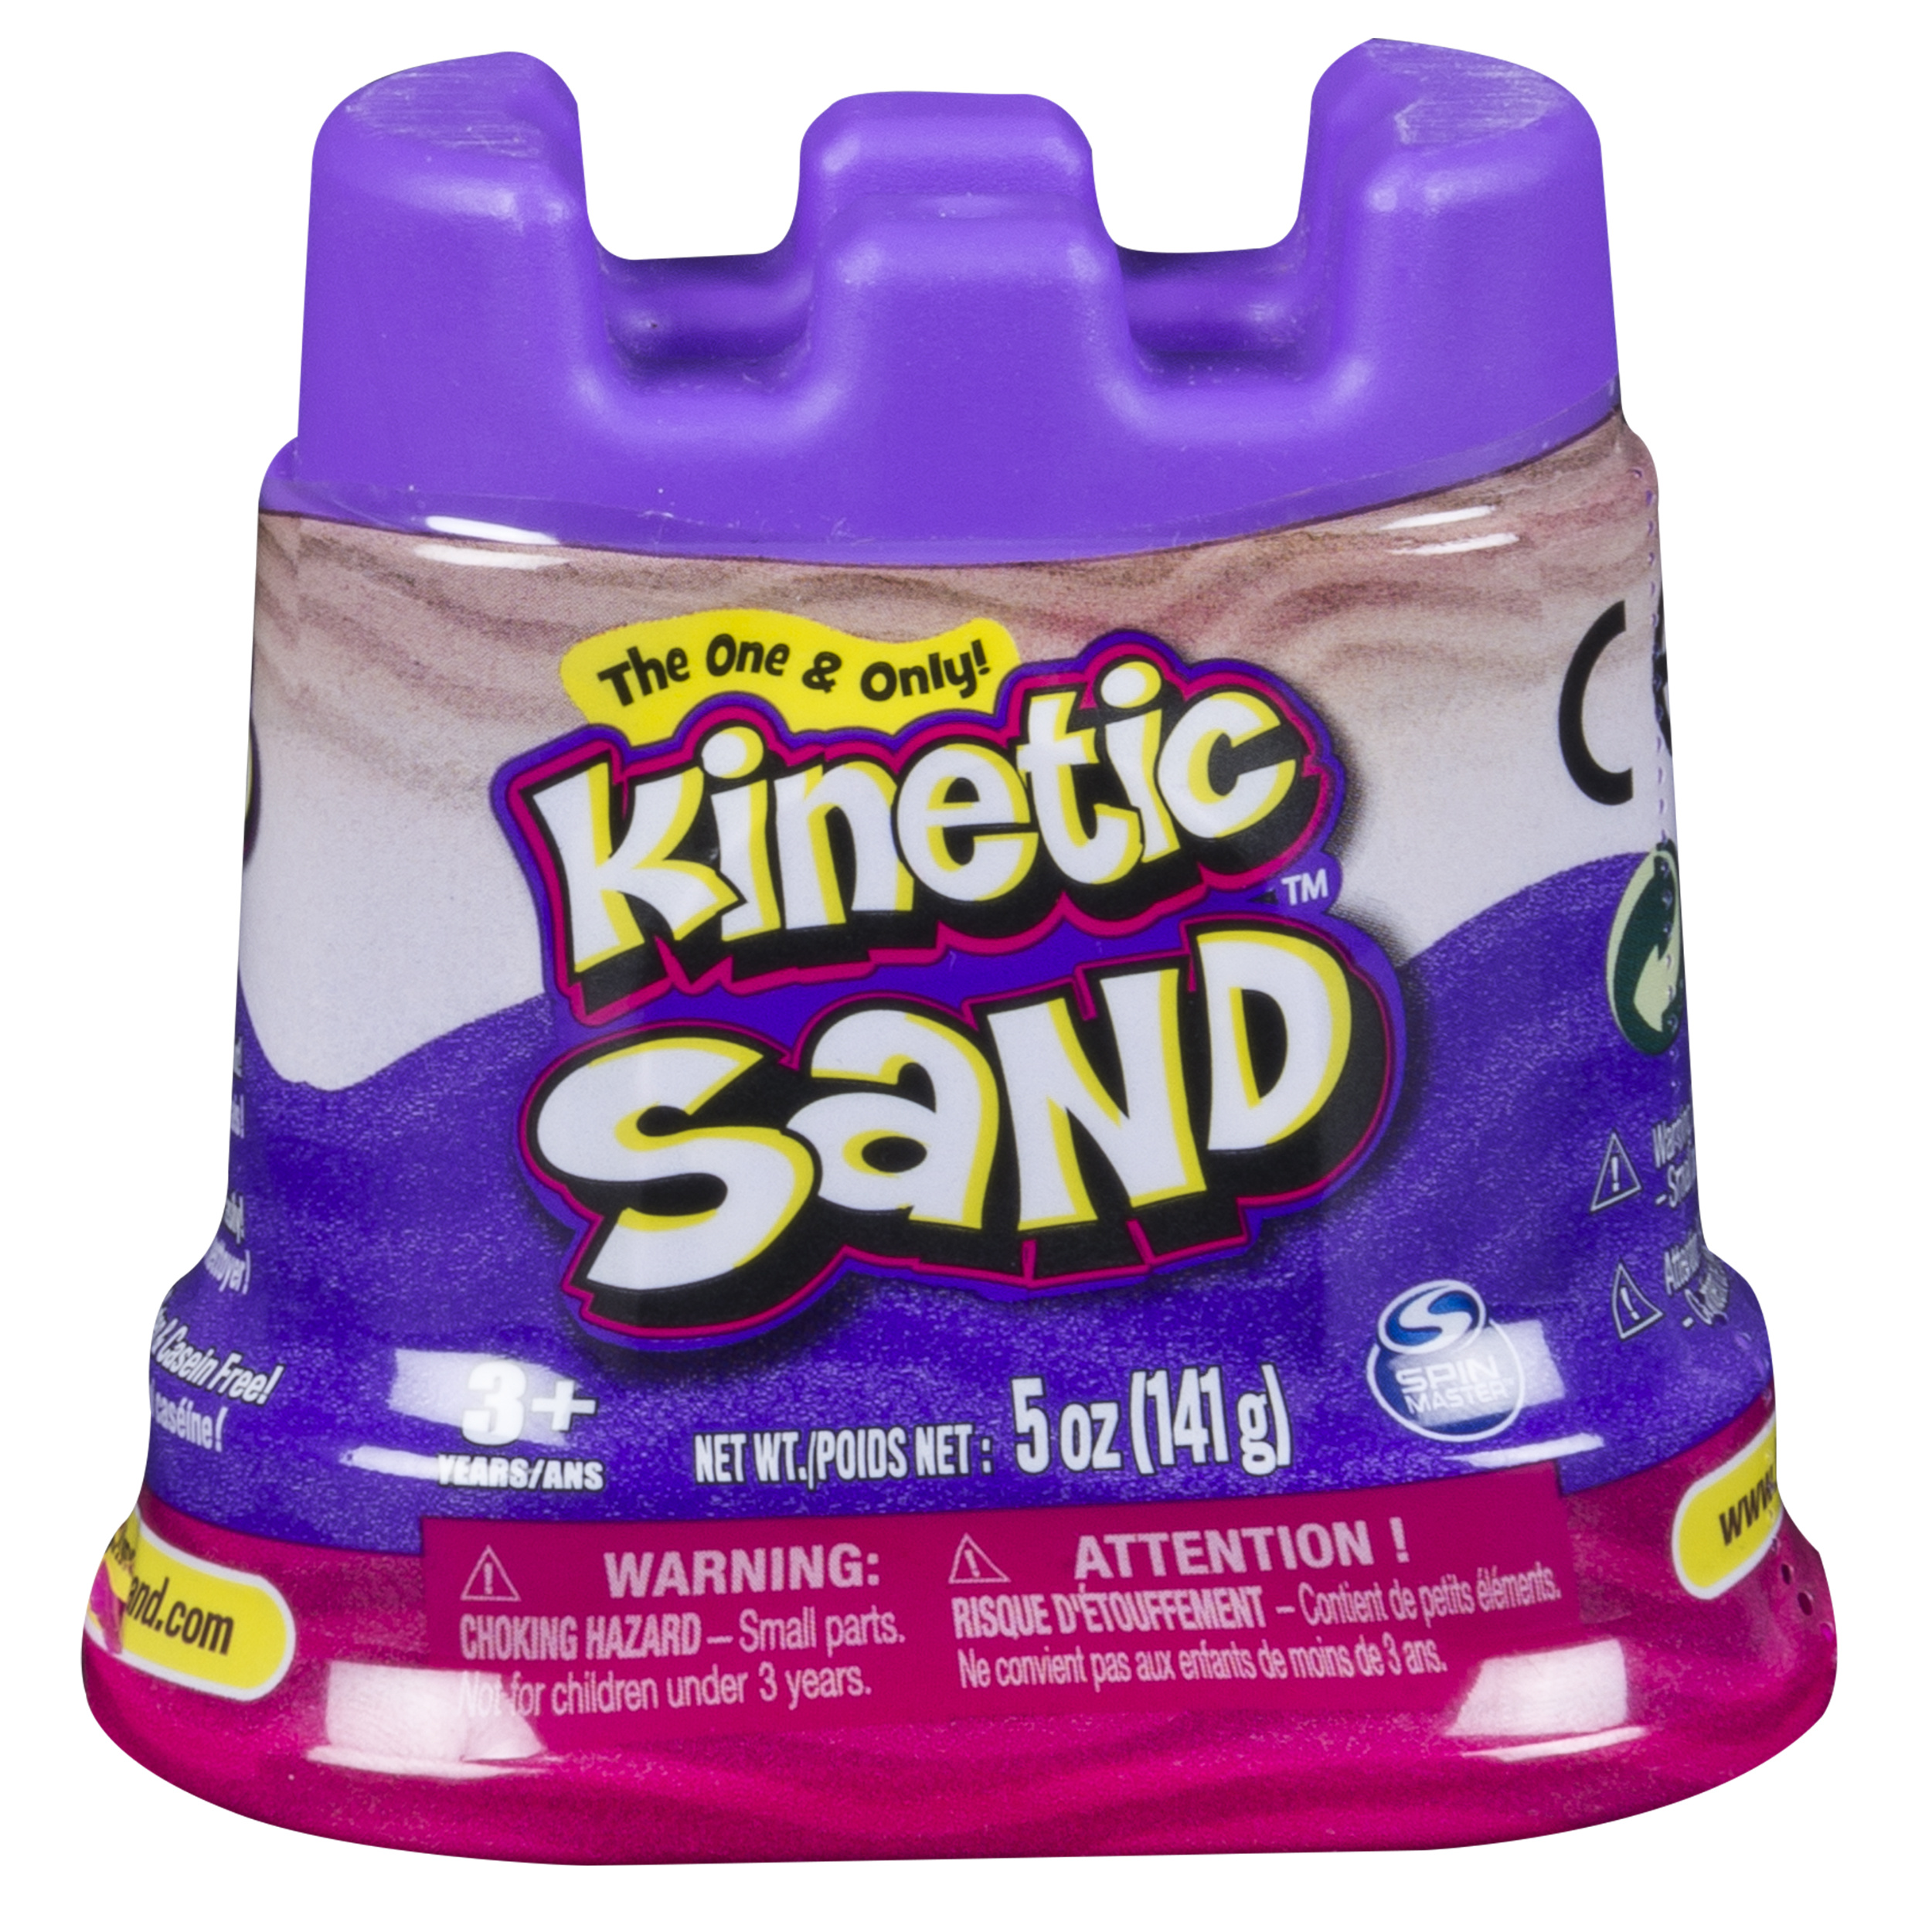 The One & Only Kinetic Sand 5 oz Single Container, Pink